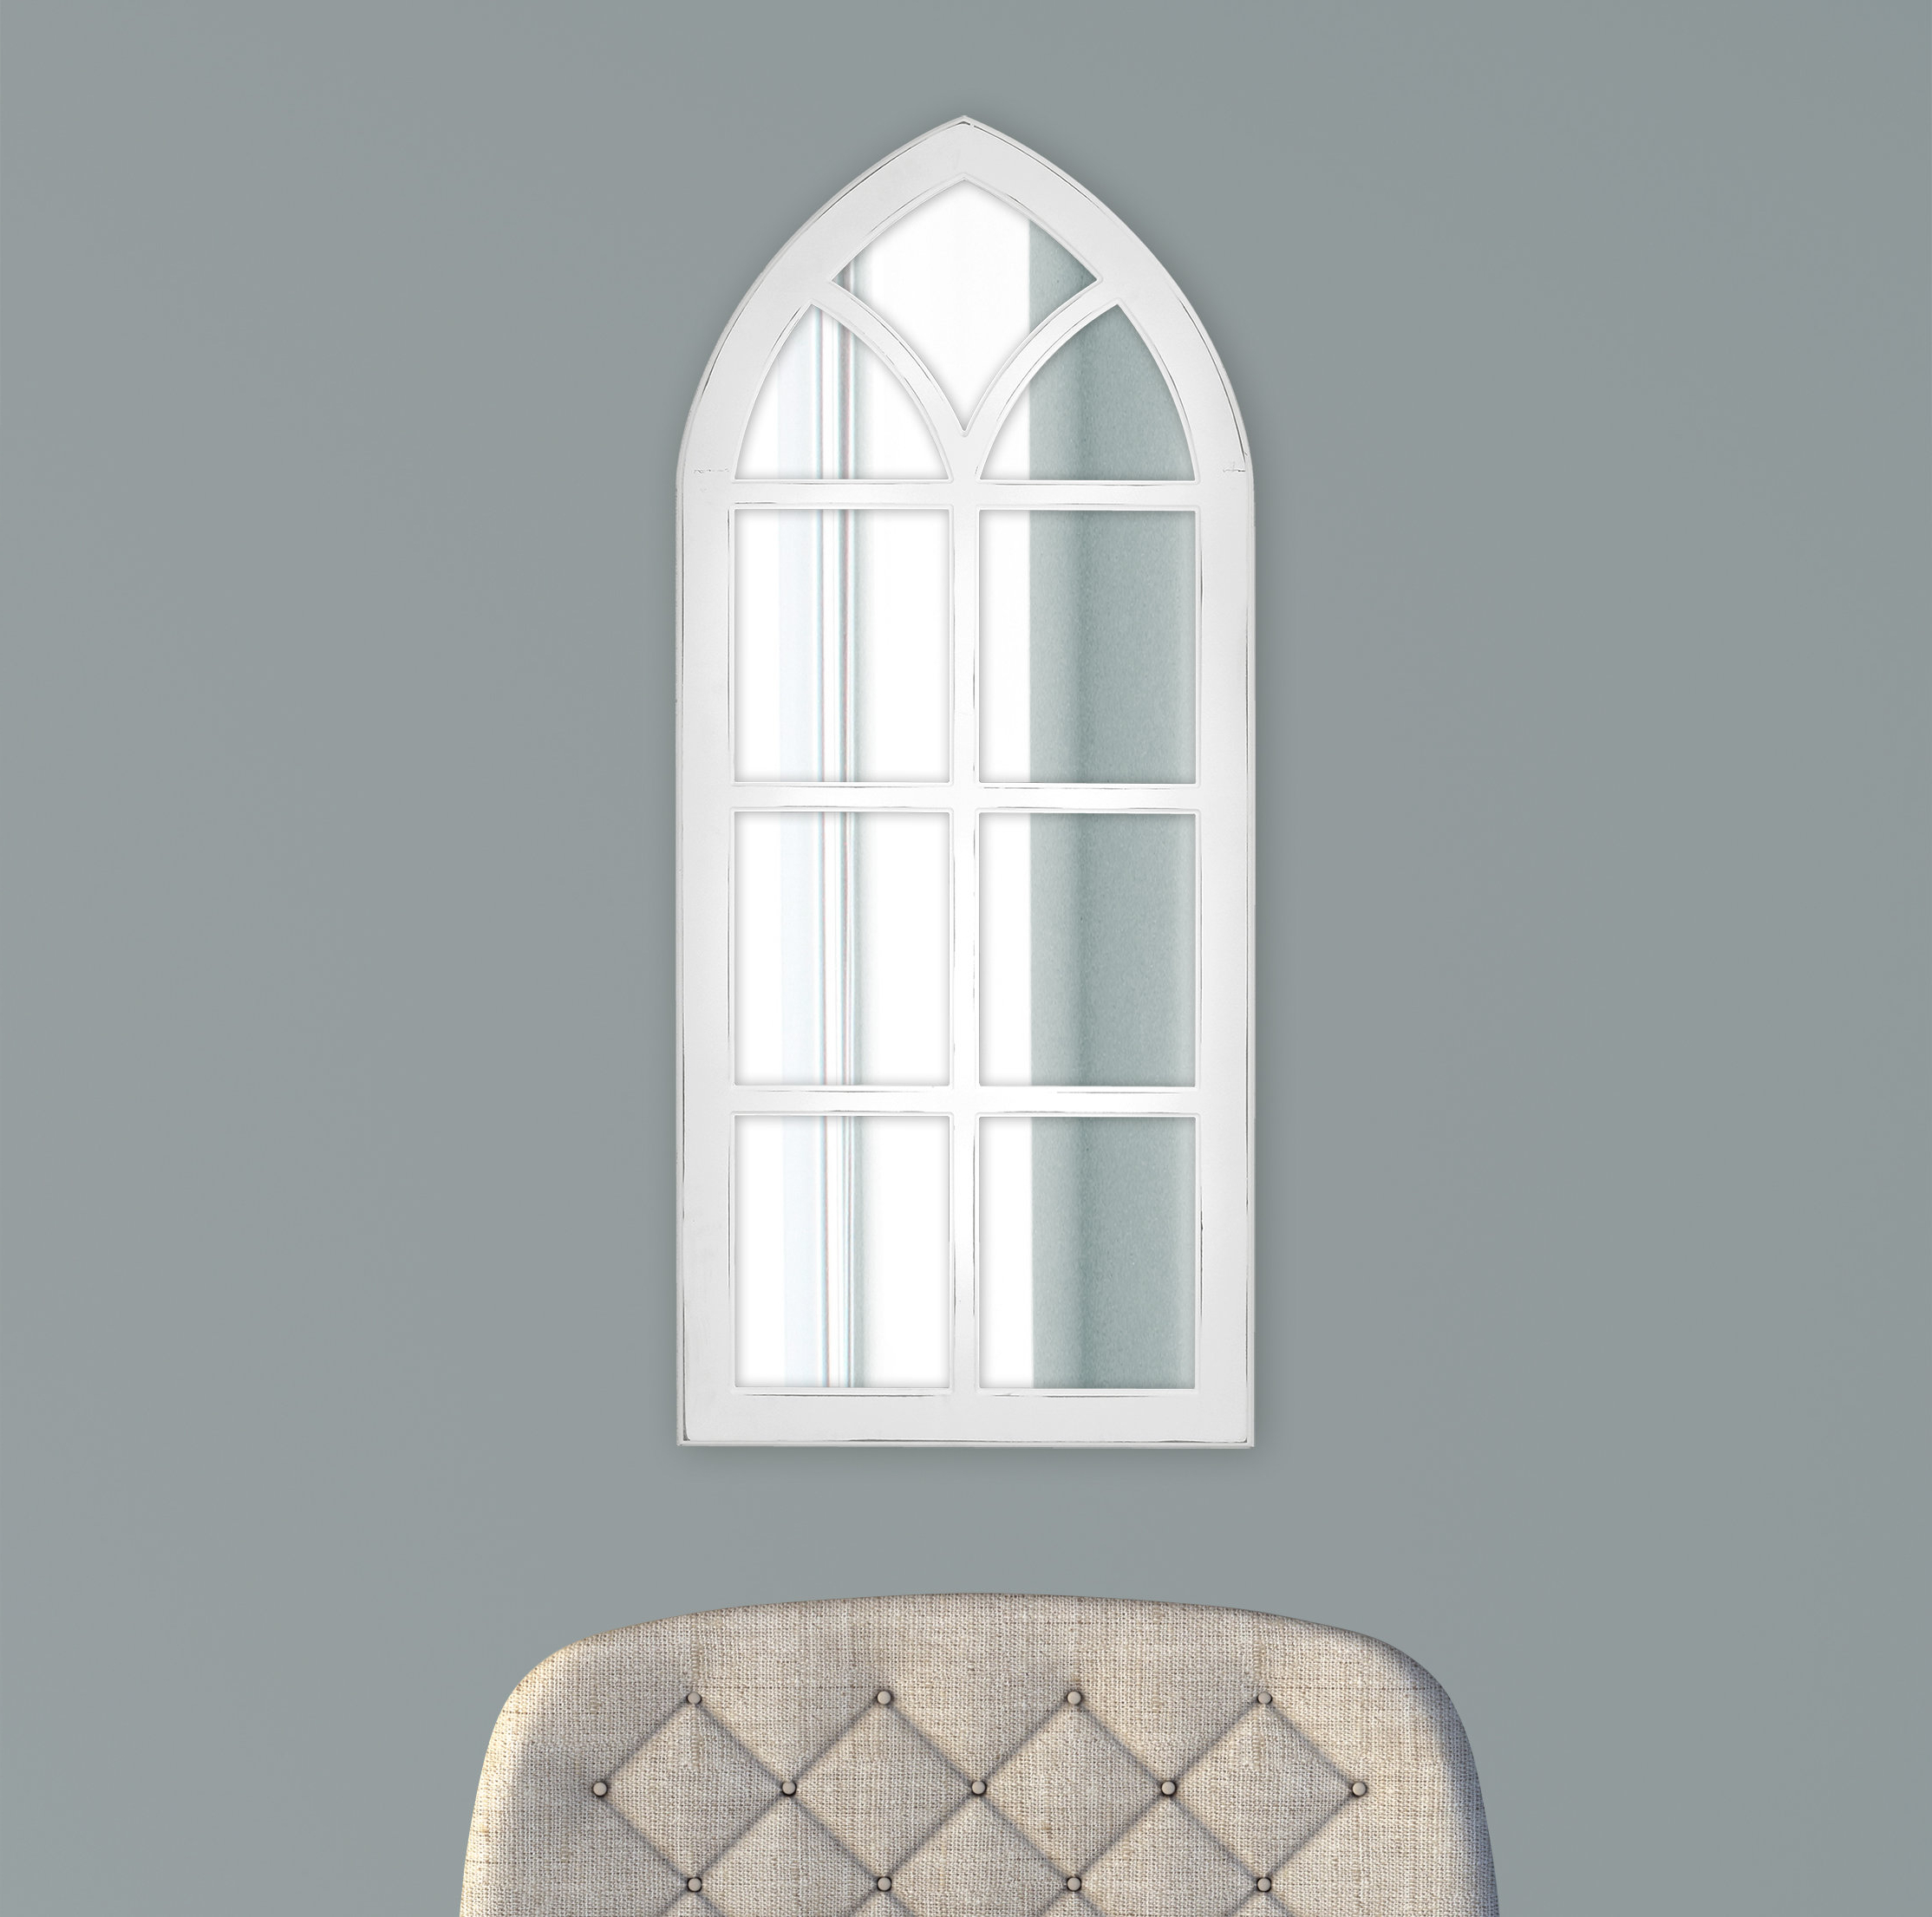 Fiscus Windowpane Wall Accent Mirror Within Newest 2 Piece Kissena Window Pane Accent Mirror Sets (View 12 of 20)